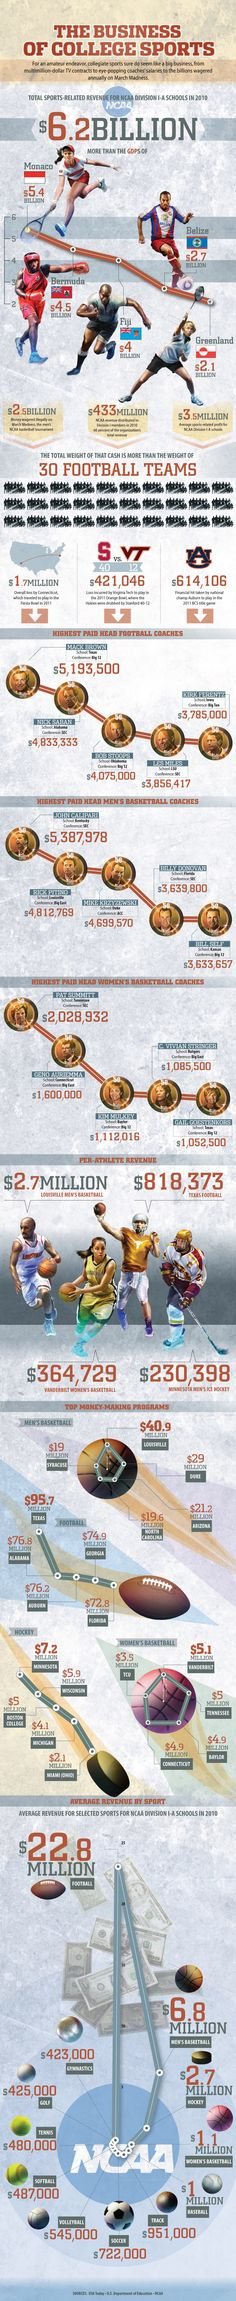 The Business of College Sports #infographic